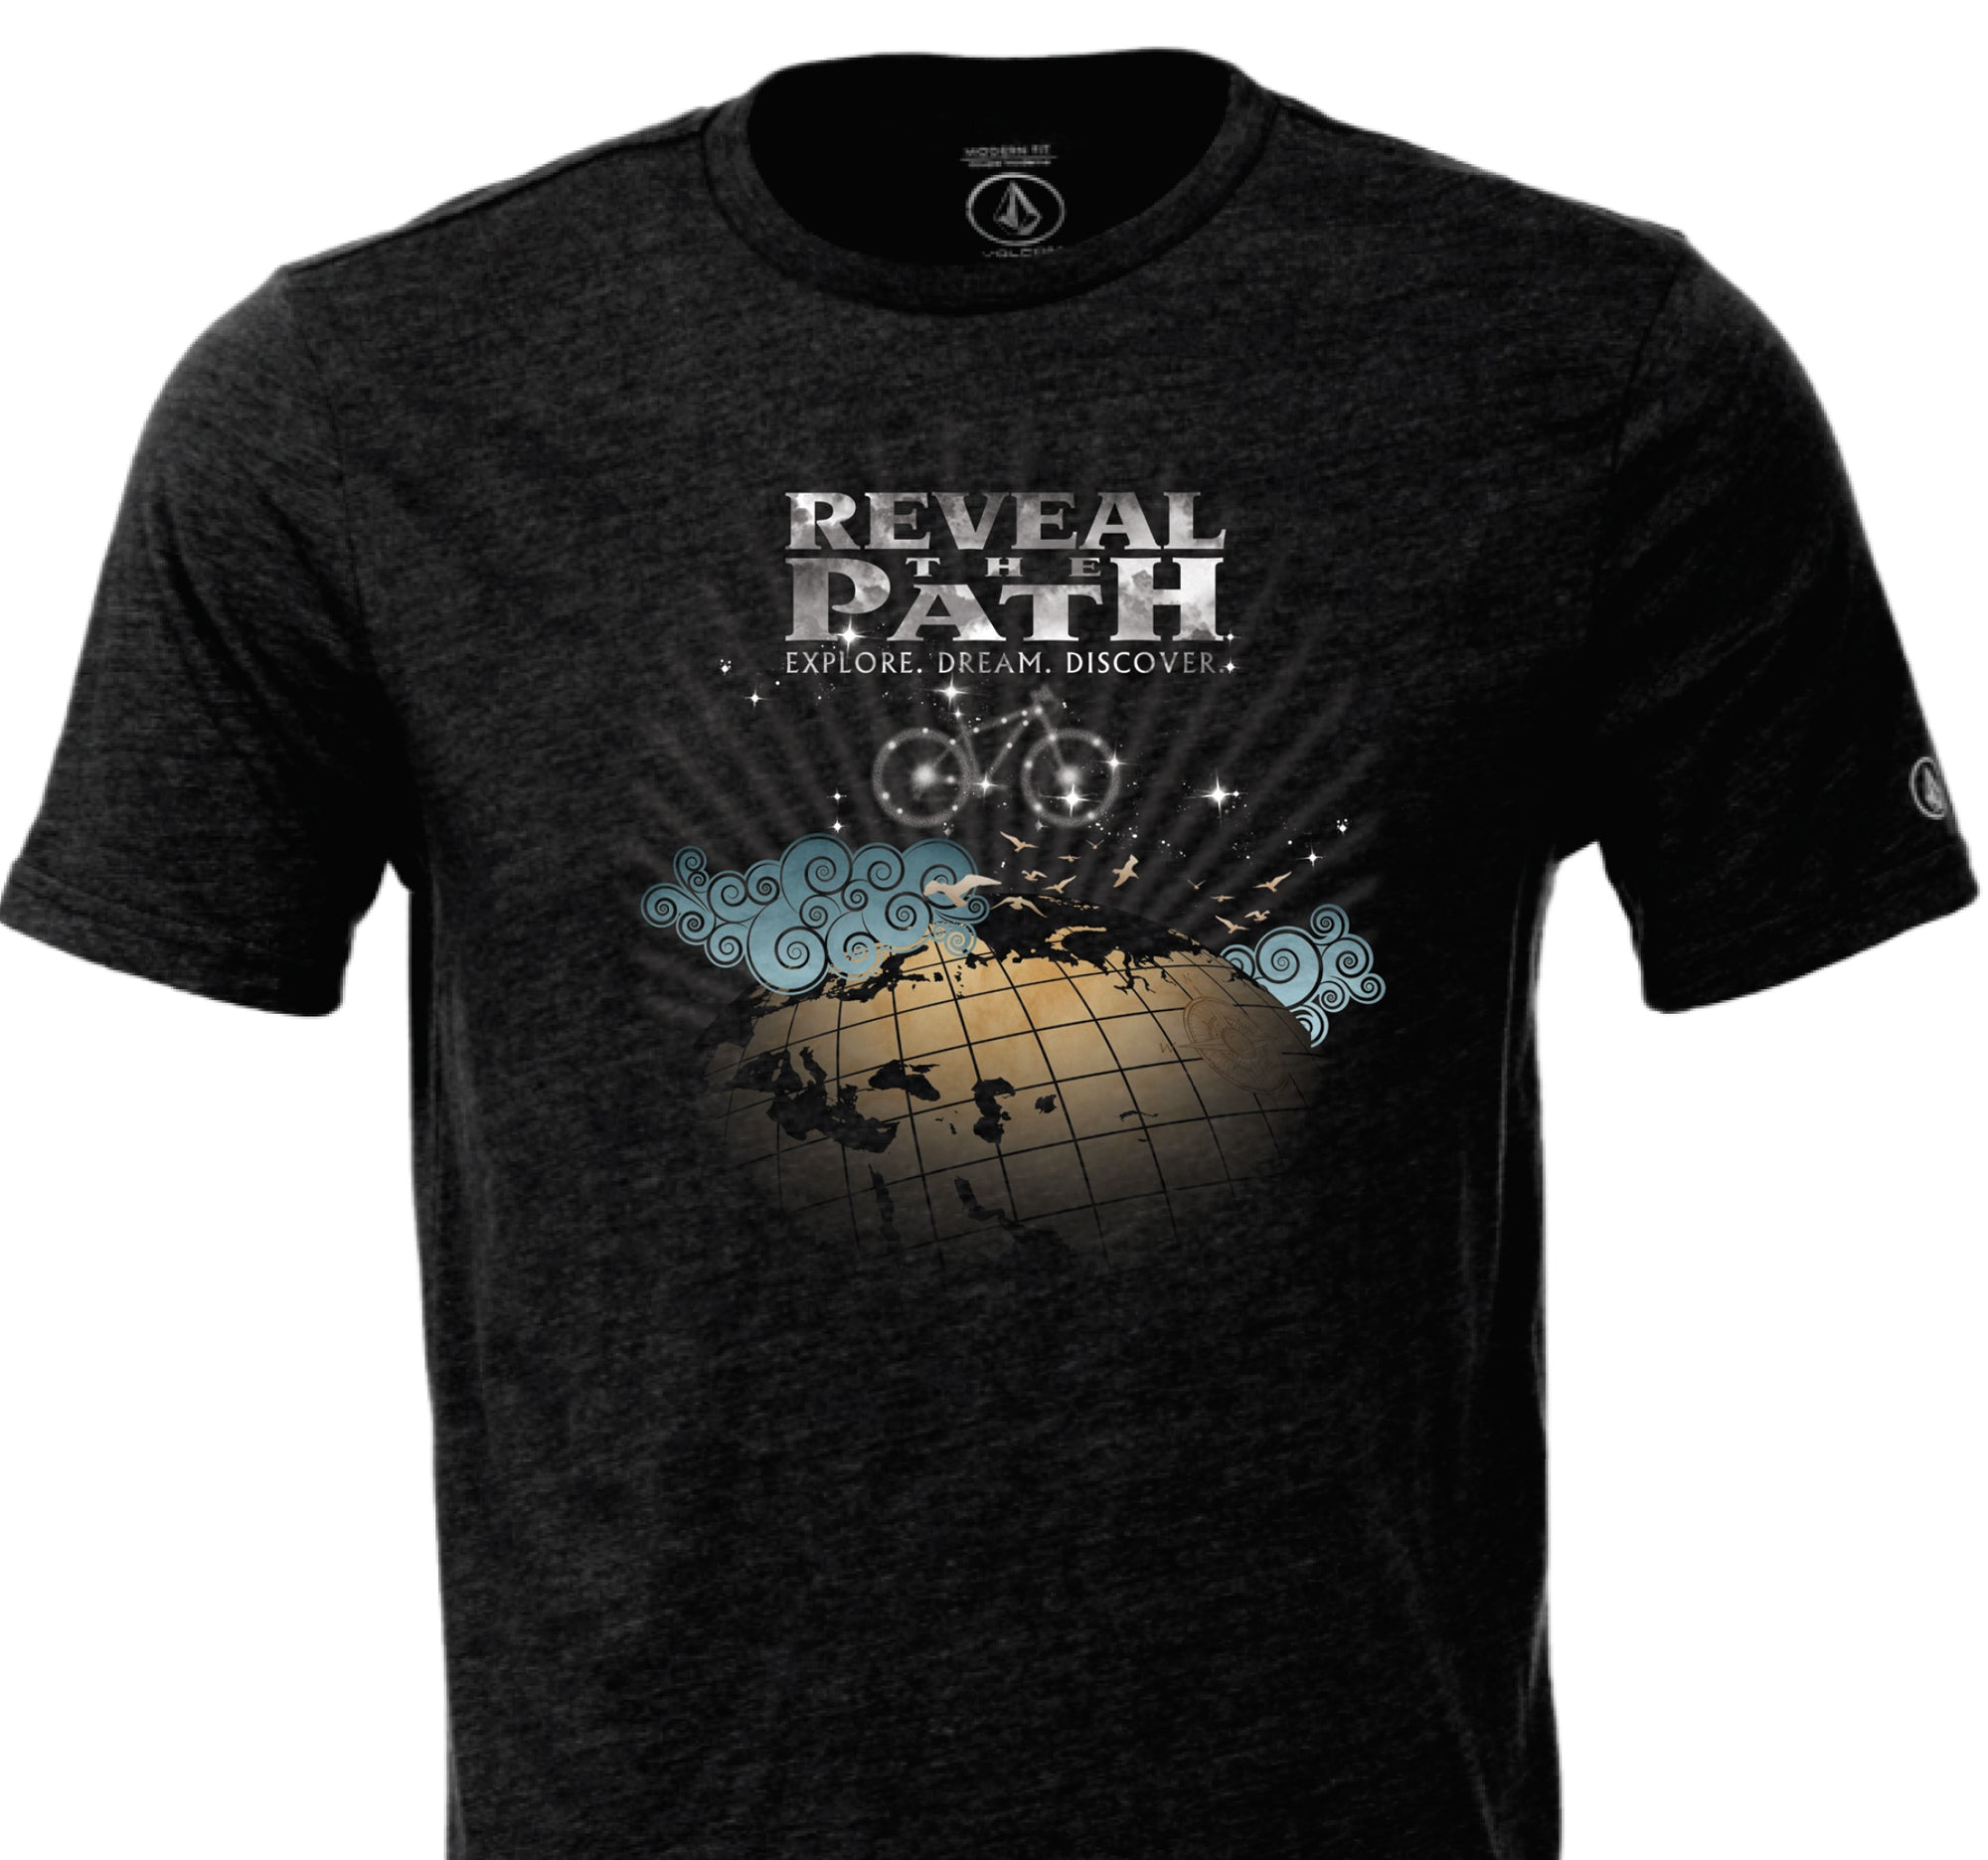 A Reveal the Path - 'Explore Dream Discover'